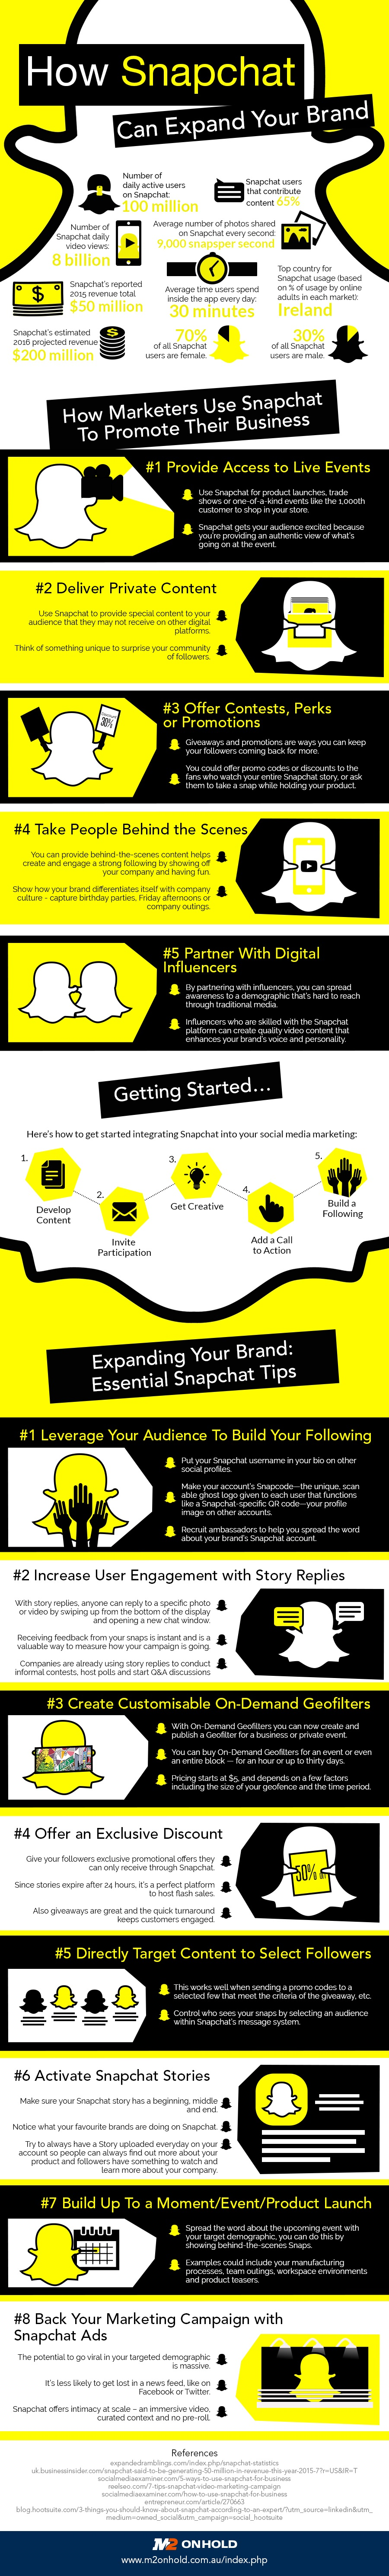 Infographic: How Snapchat Can Expand Your Brand